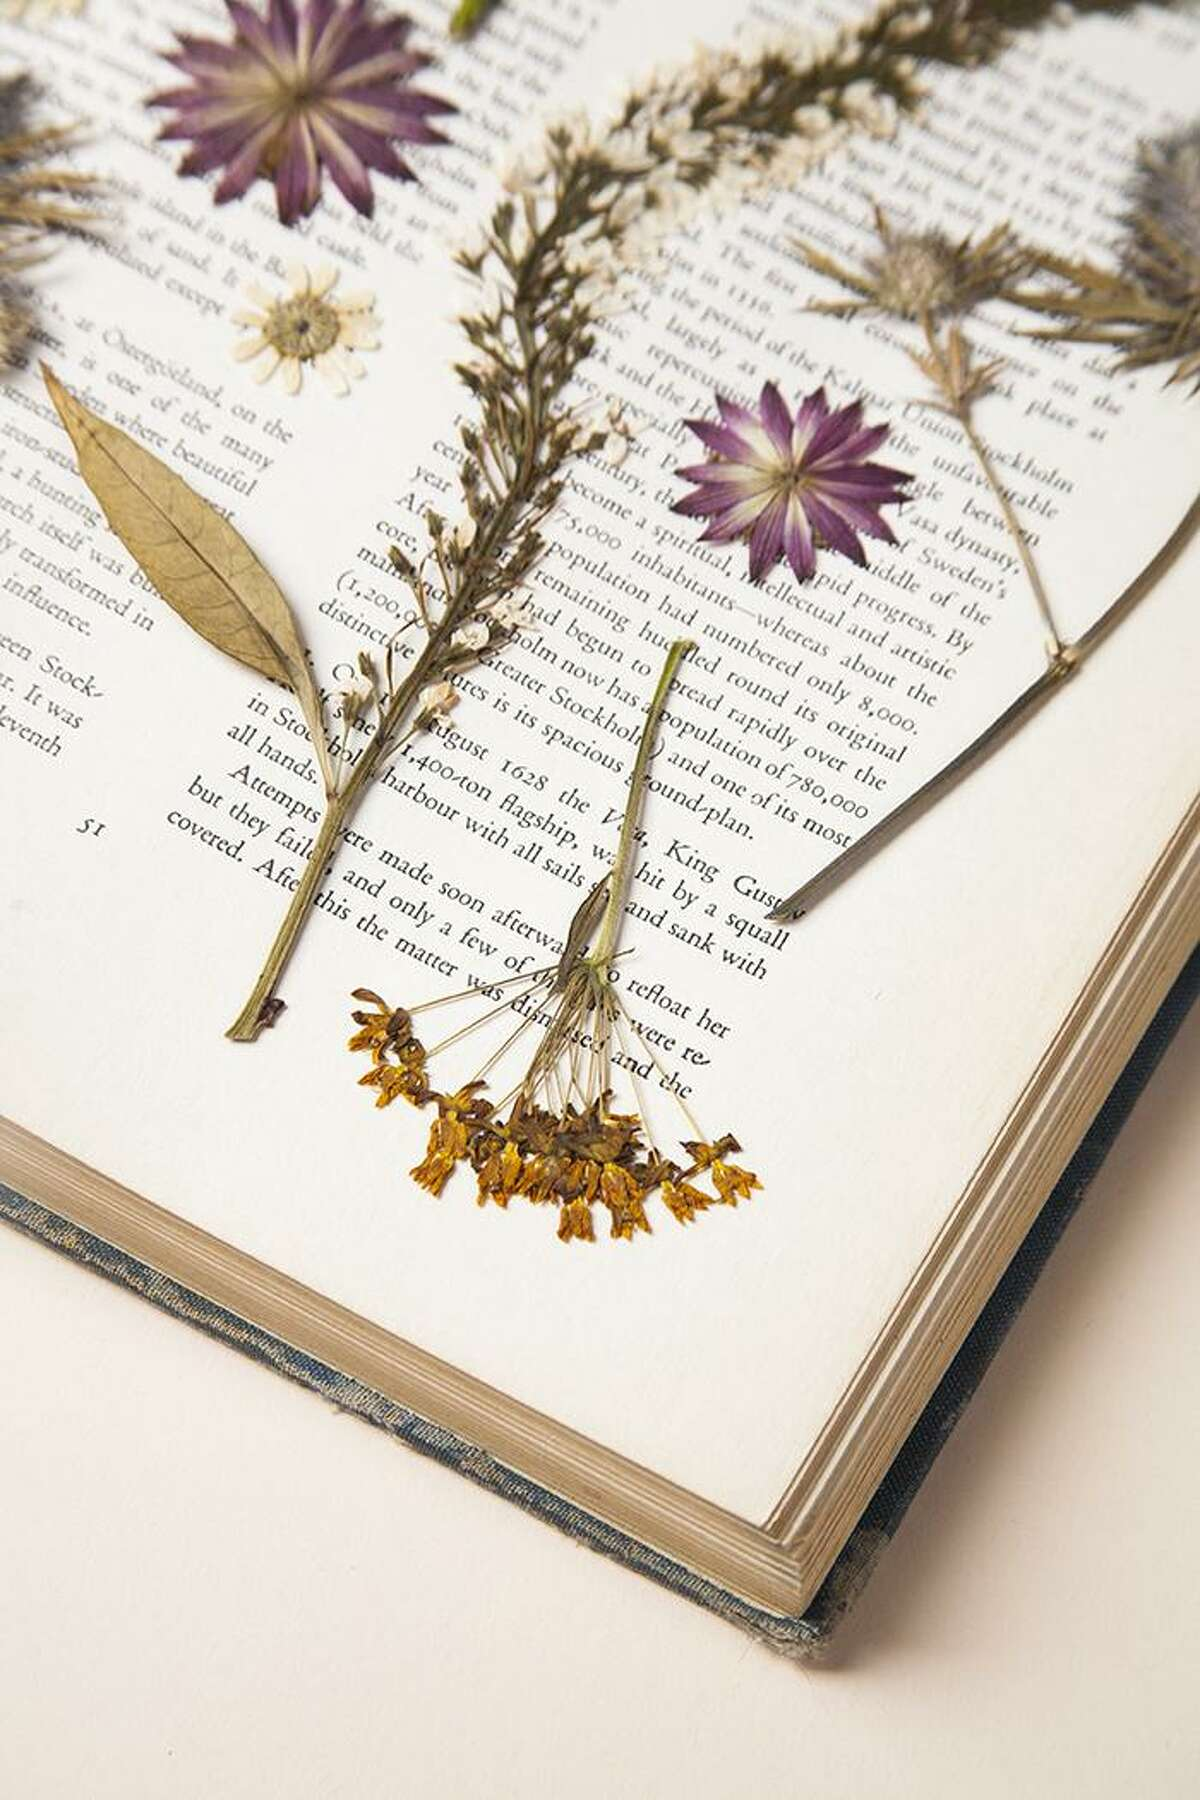 The Wilton Historical Society will host a Pressed Flower Workshop for Kids from 11 a.m. to 12:30 p.m. Saturday, July 15.